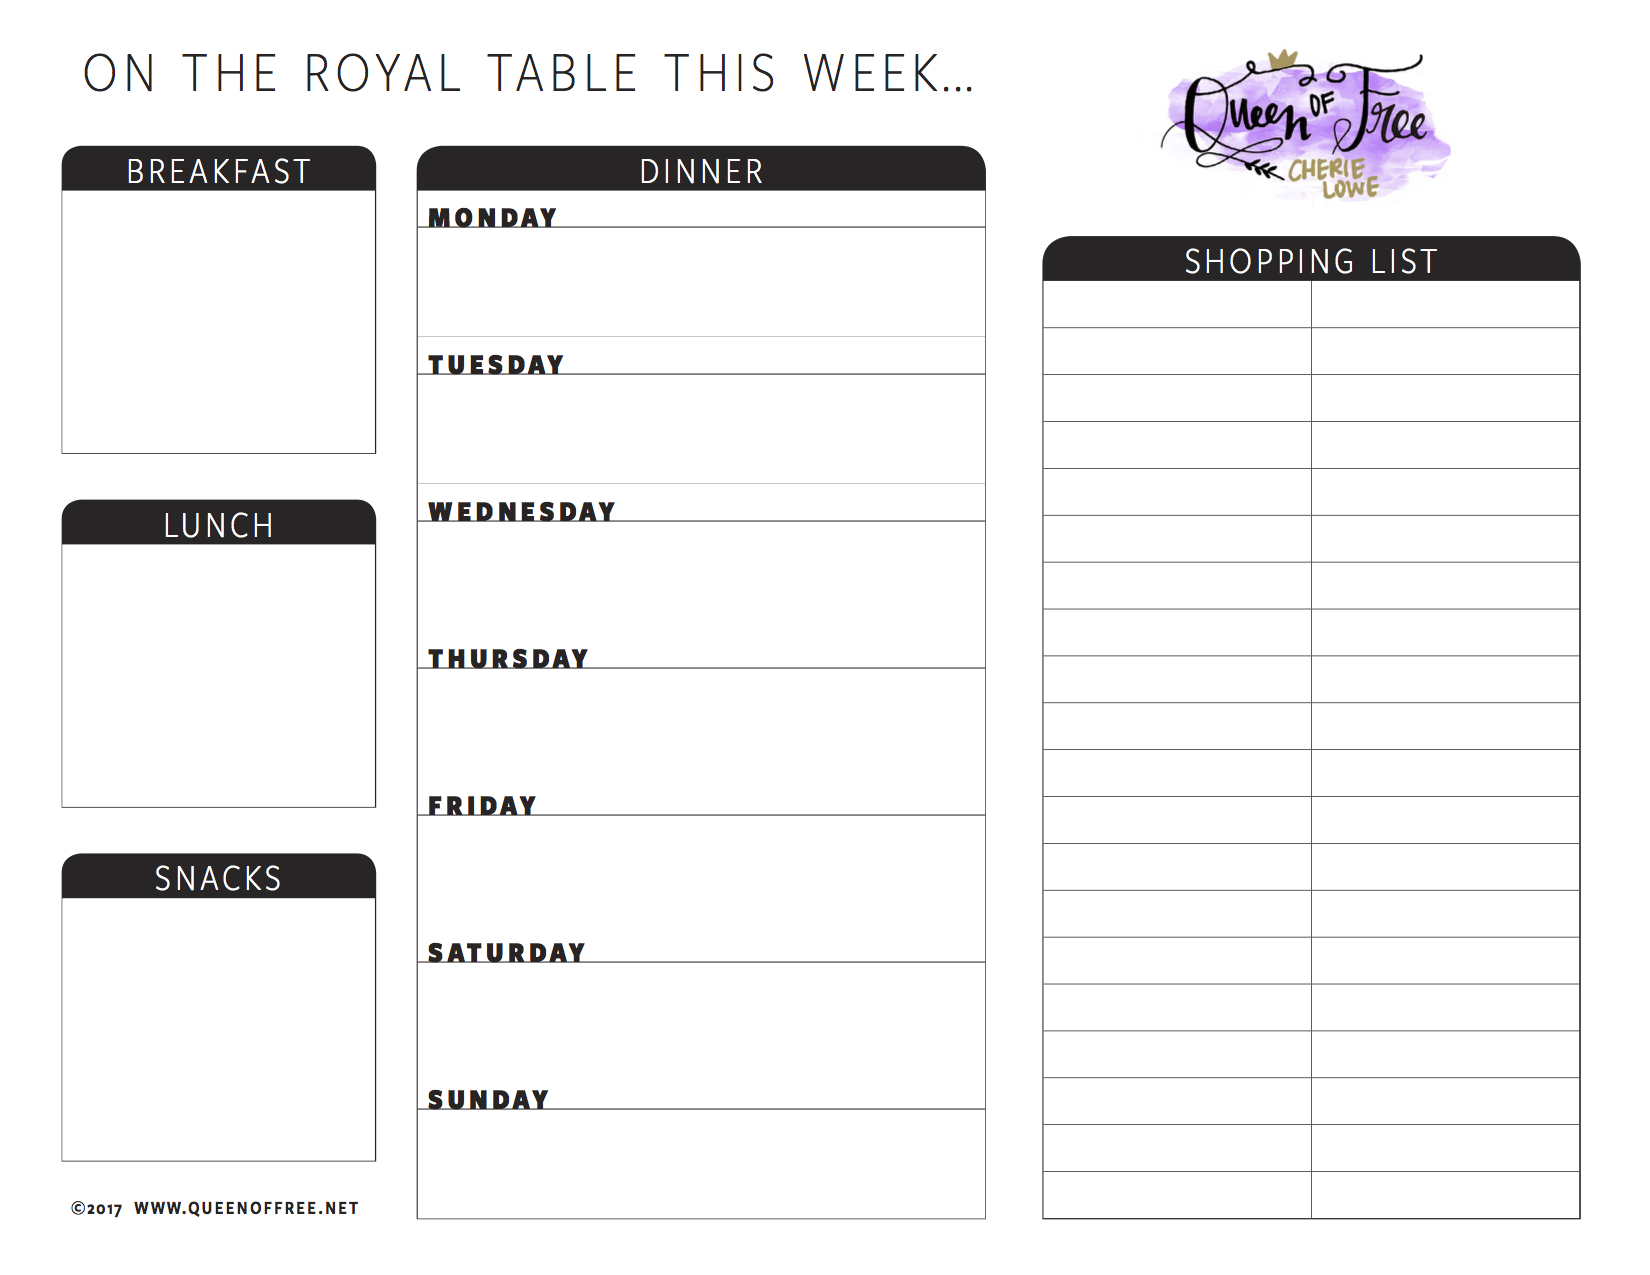 photo about Free Printable Meal Planner Template named All Fresh new: Totally free Printable Dinner Planner On your own Can Edit - Queen of